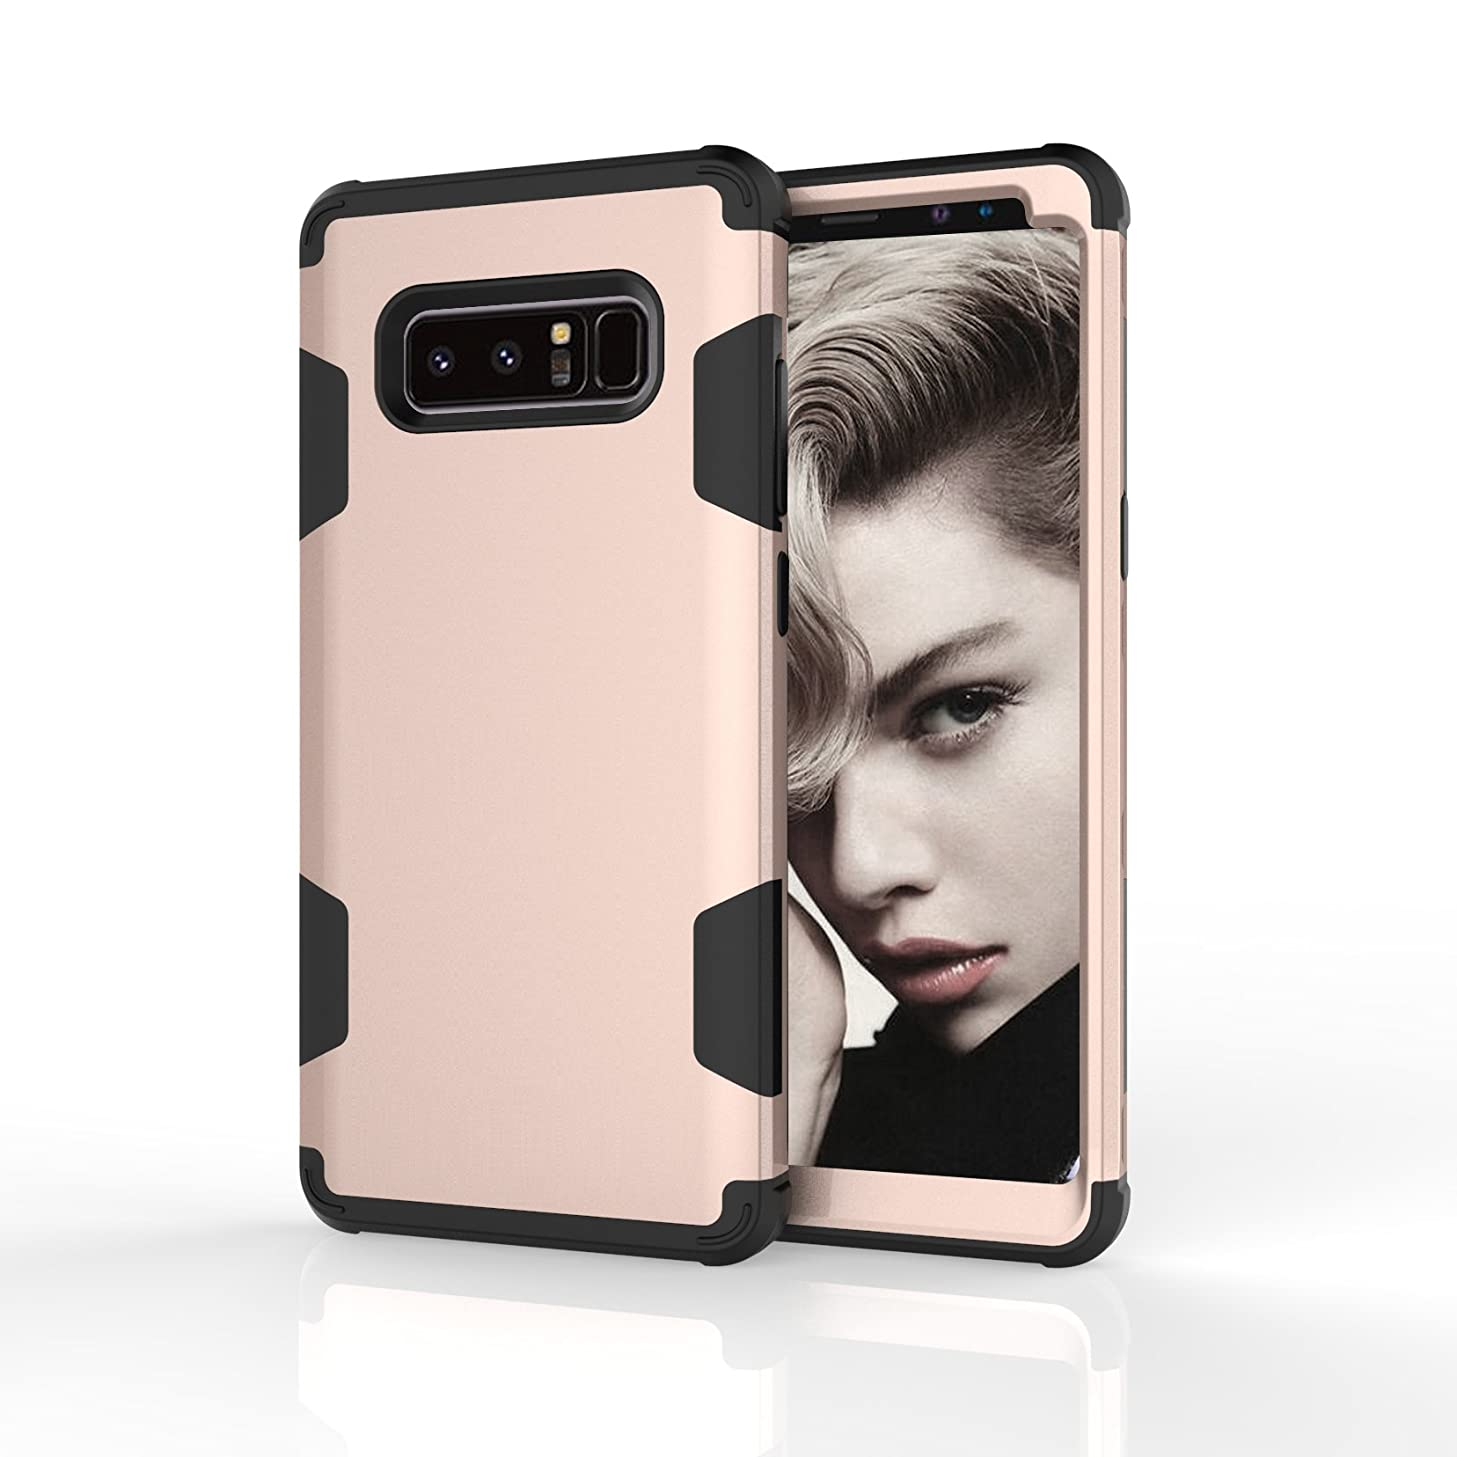 Galaxy Note 8 Case, UZER Slim Fit 3 in 1 Hybrid Hard PC & Soft Silicone Rugged Bumper High Impact Resistant Shock-Absorption Anti Slip Full-Body Protective Case for Samsung Galaxy Note 8 2017 Model